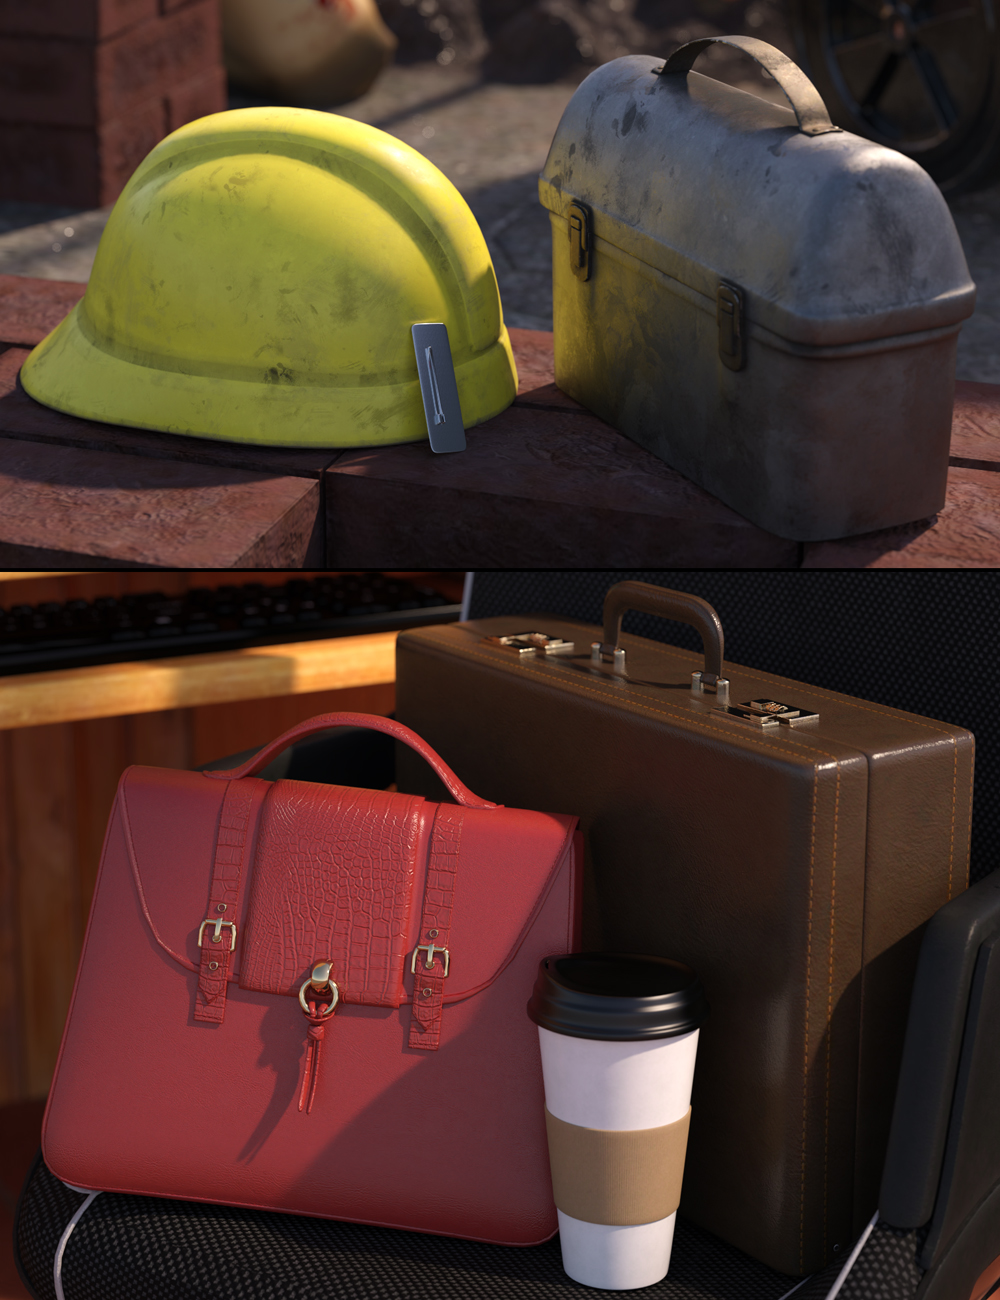 Going to Work Props for Genesis 8 and 8.1 by: Nikisatez, 3D Models by Daz 3D